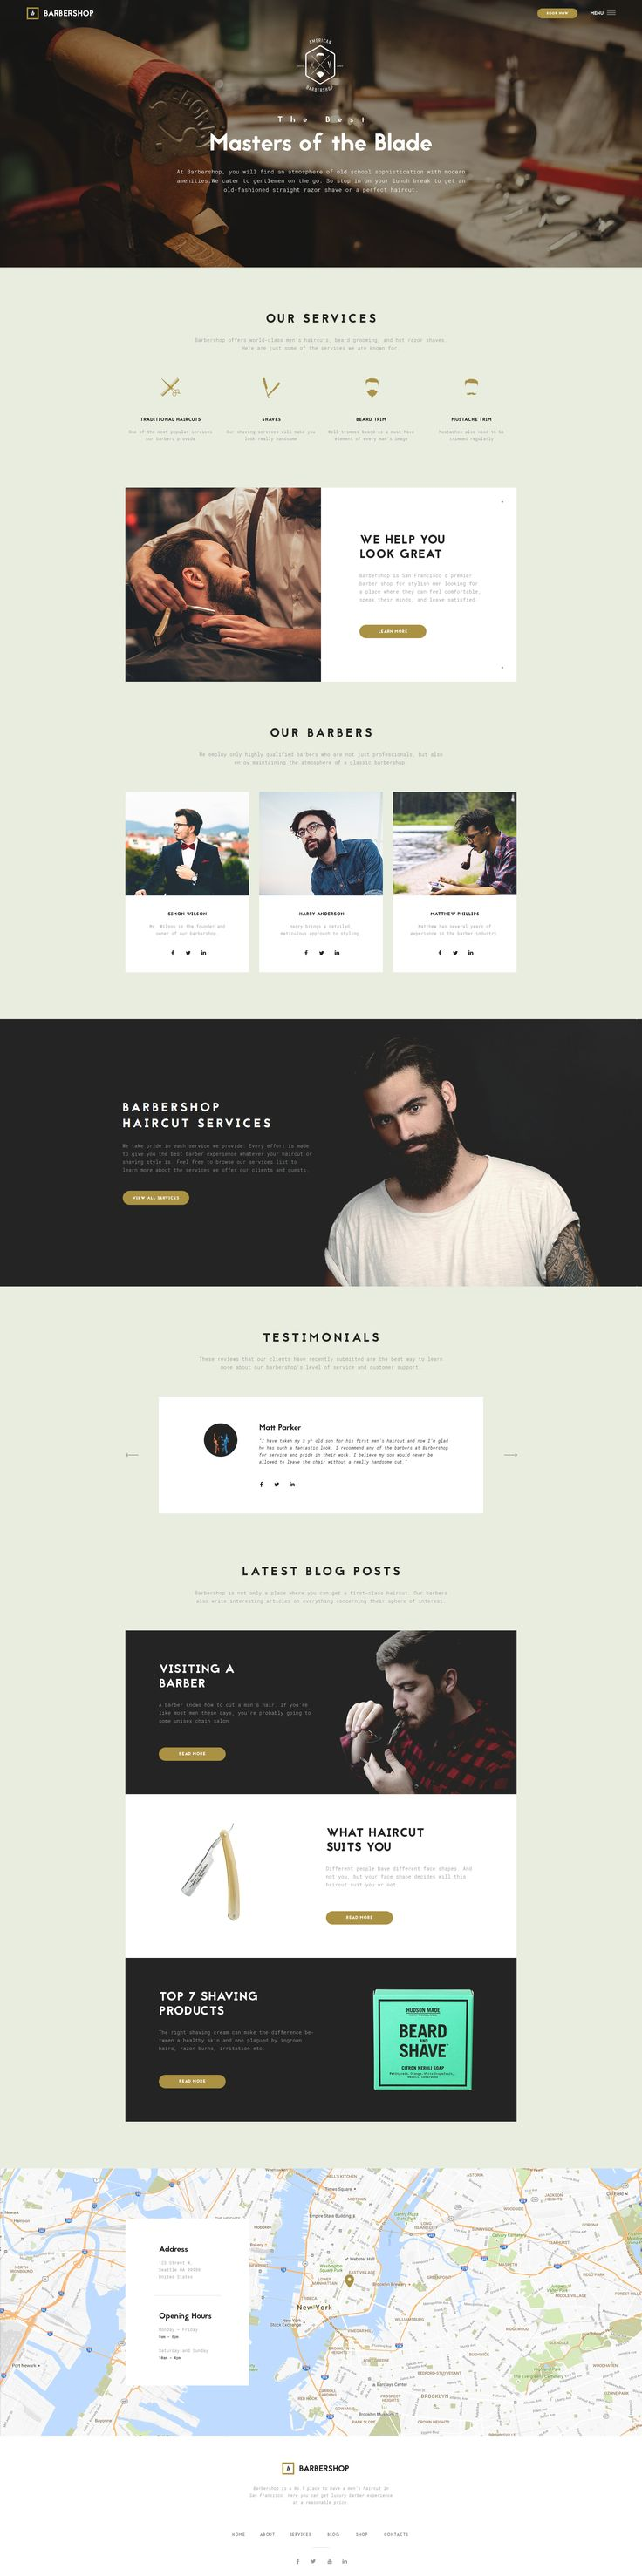 Cute 010 Editor Templates Small 1300 Resume Government Samples Selection Criteria Rectangular 18th Birthday Invitation Templates 1st Job Resume Template Old 2014 Printable Calendar Template Brown24 Hour Timeline Template 25  Best Ideas About Salon Website On Pinterest | Website Design ..